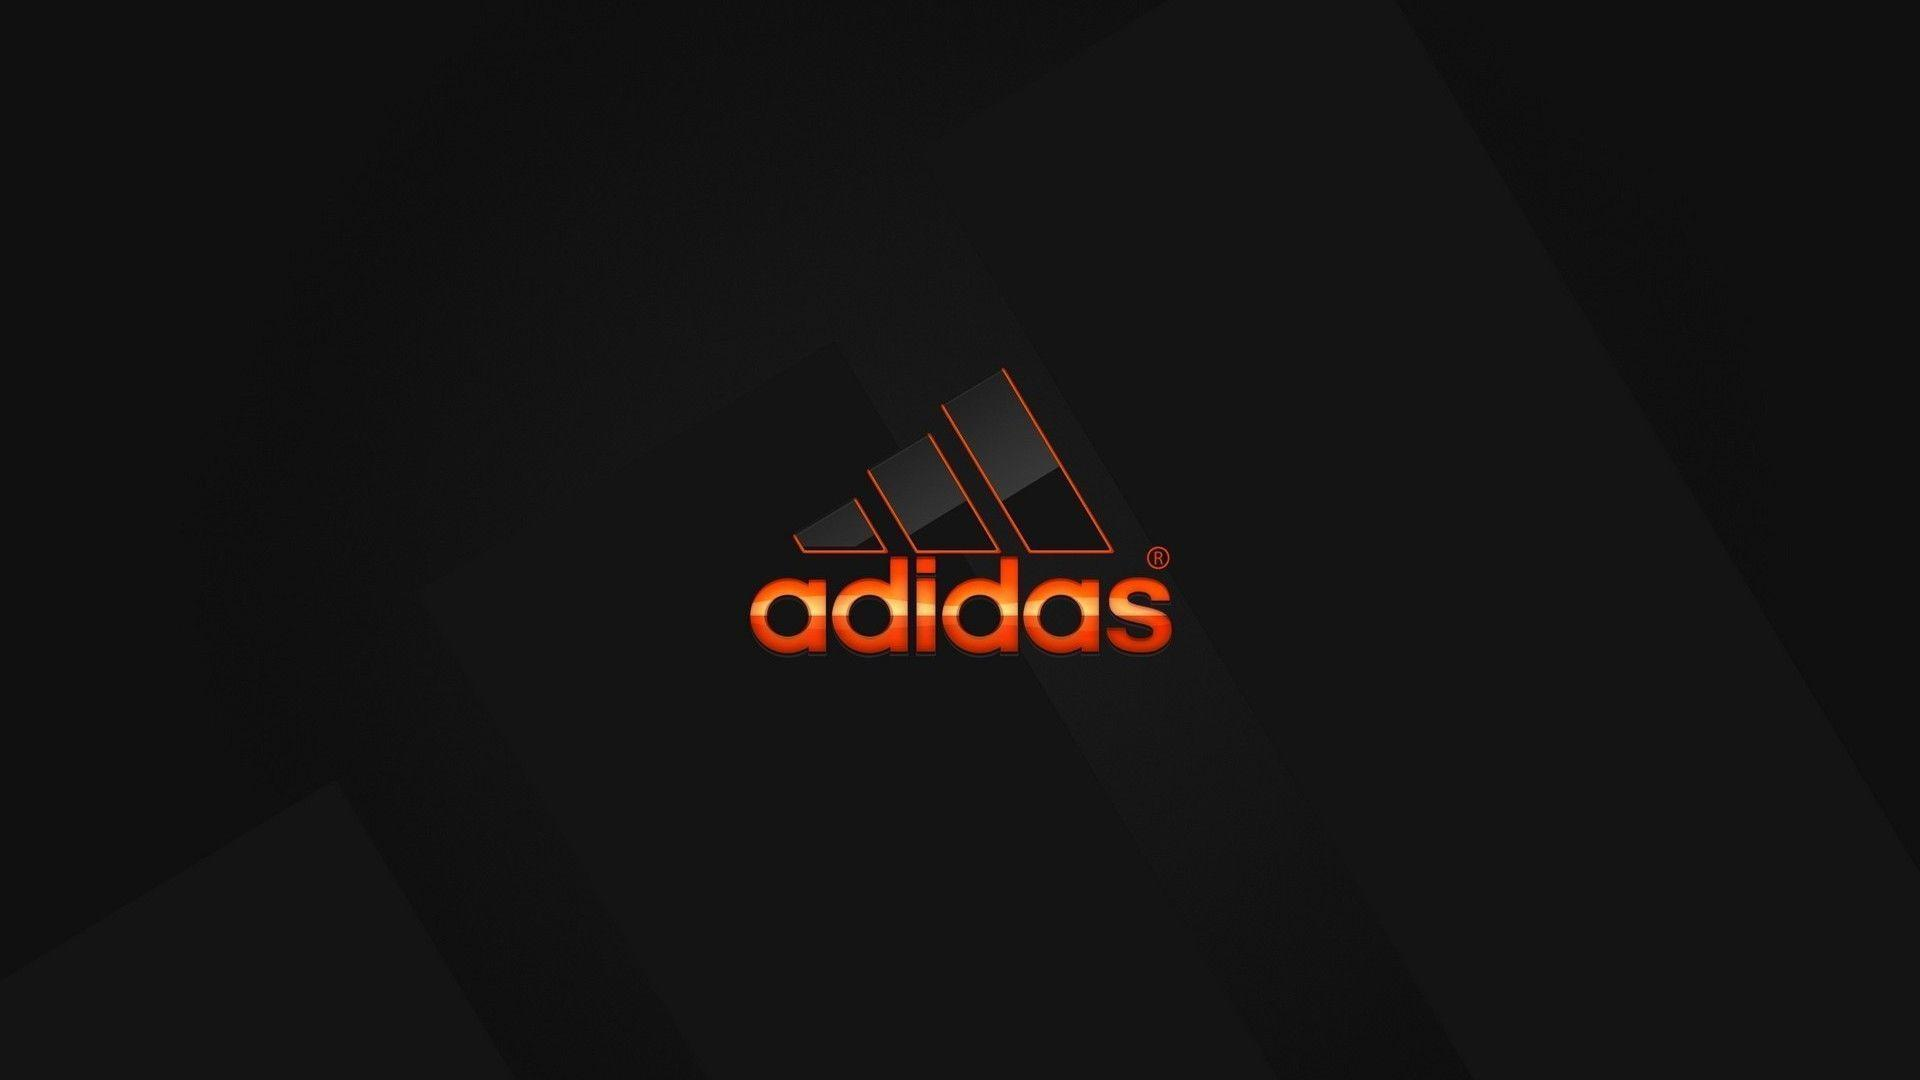 Adidas Logo Wallpapers 2015 Wallpaper Cave Orange Gambar